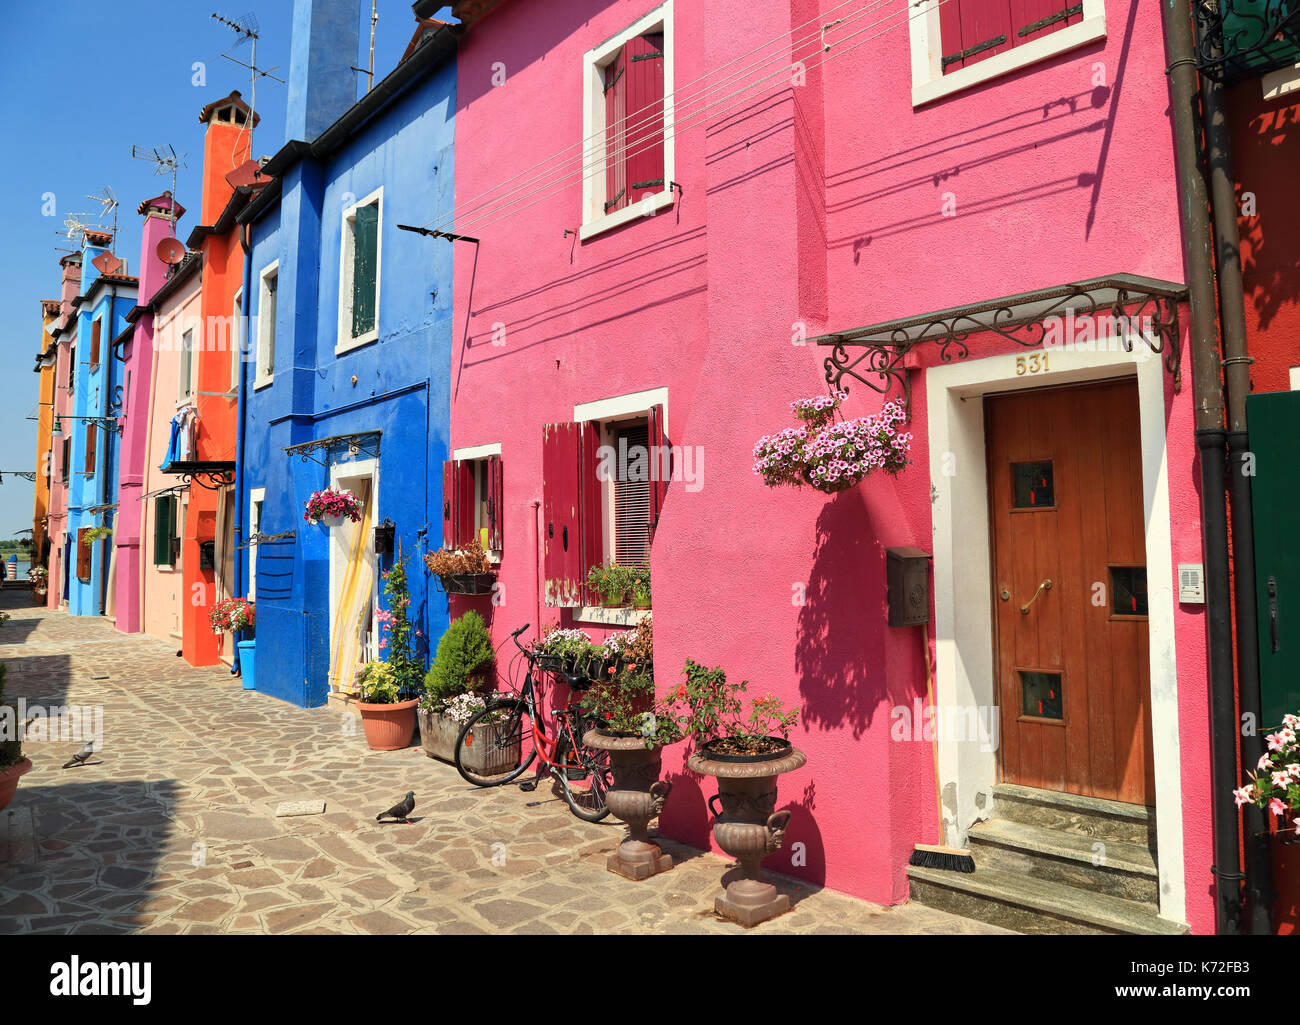 Burano Colorful Painted Houses Stock Photos & Burano Colorful ...